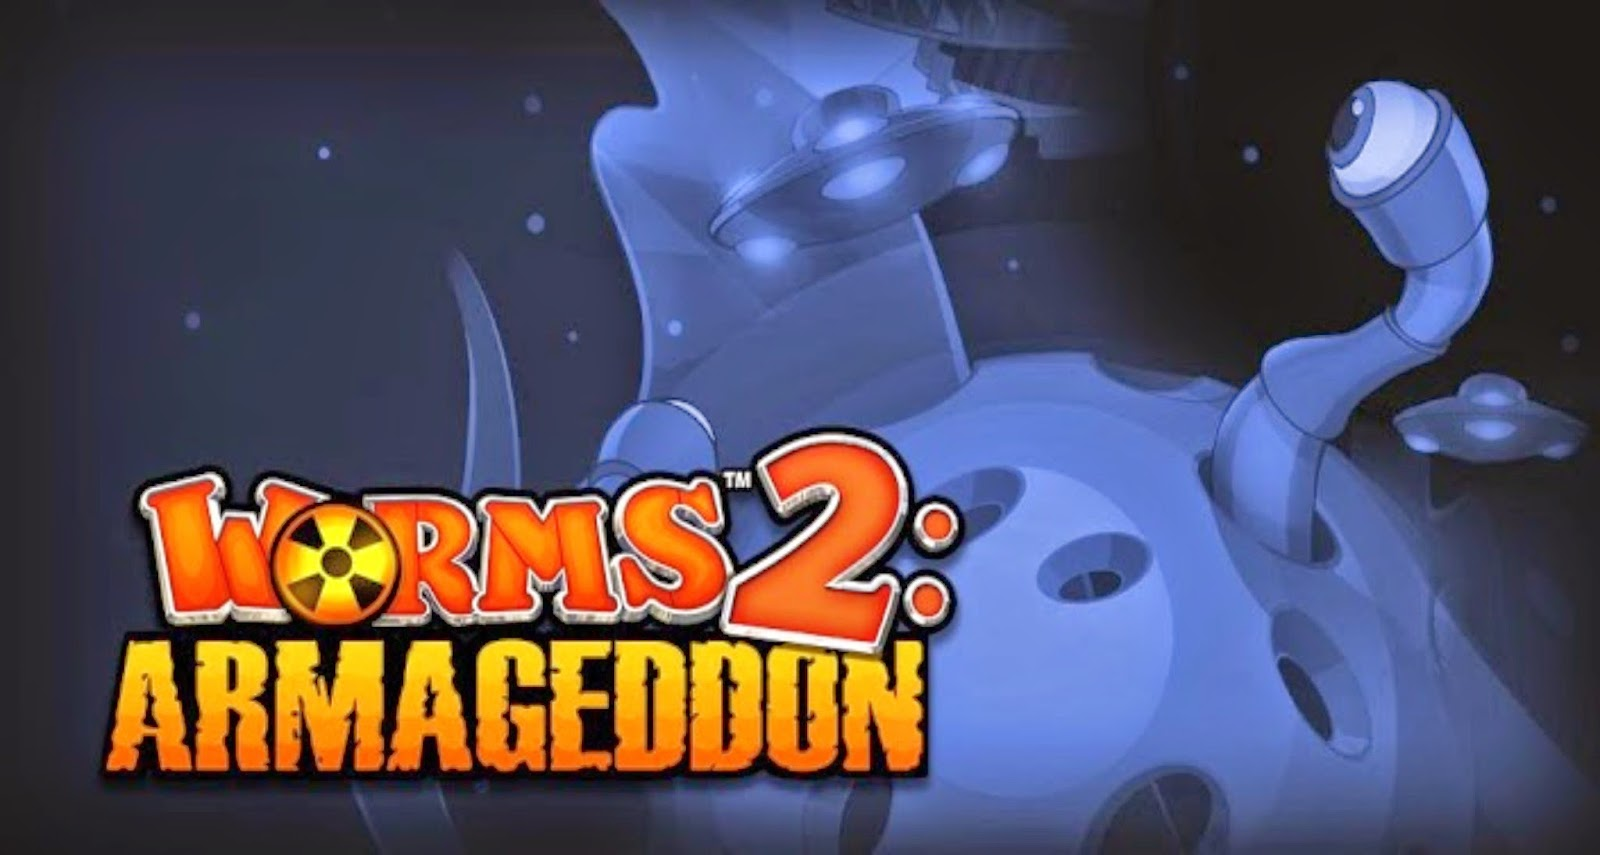 Worms 2 Armageddon Apk Data Android